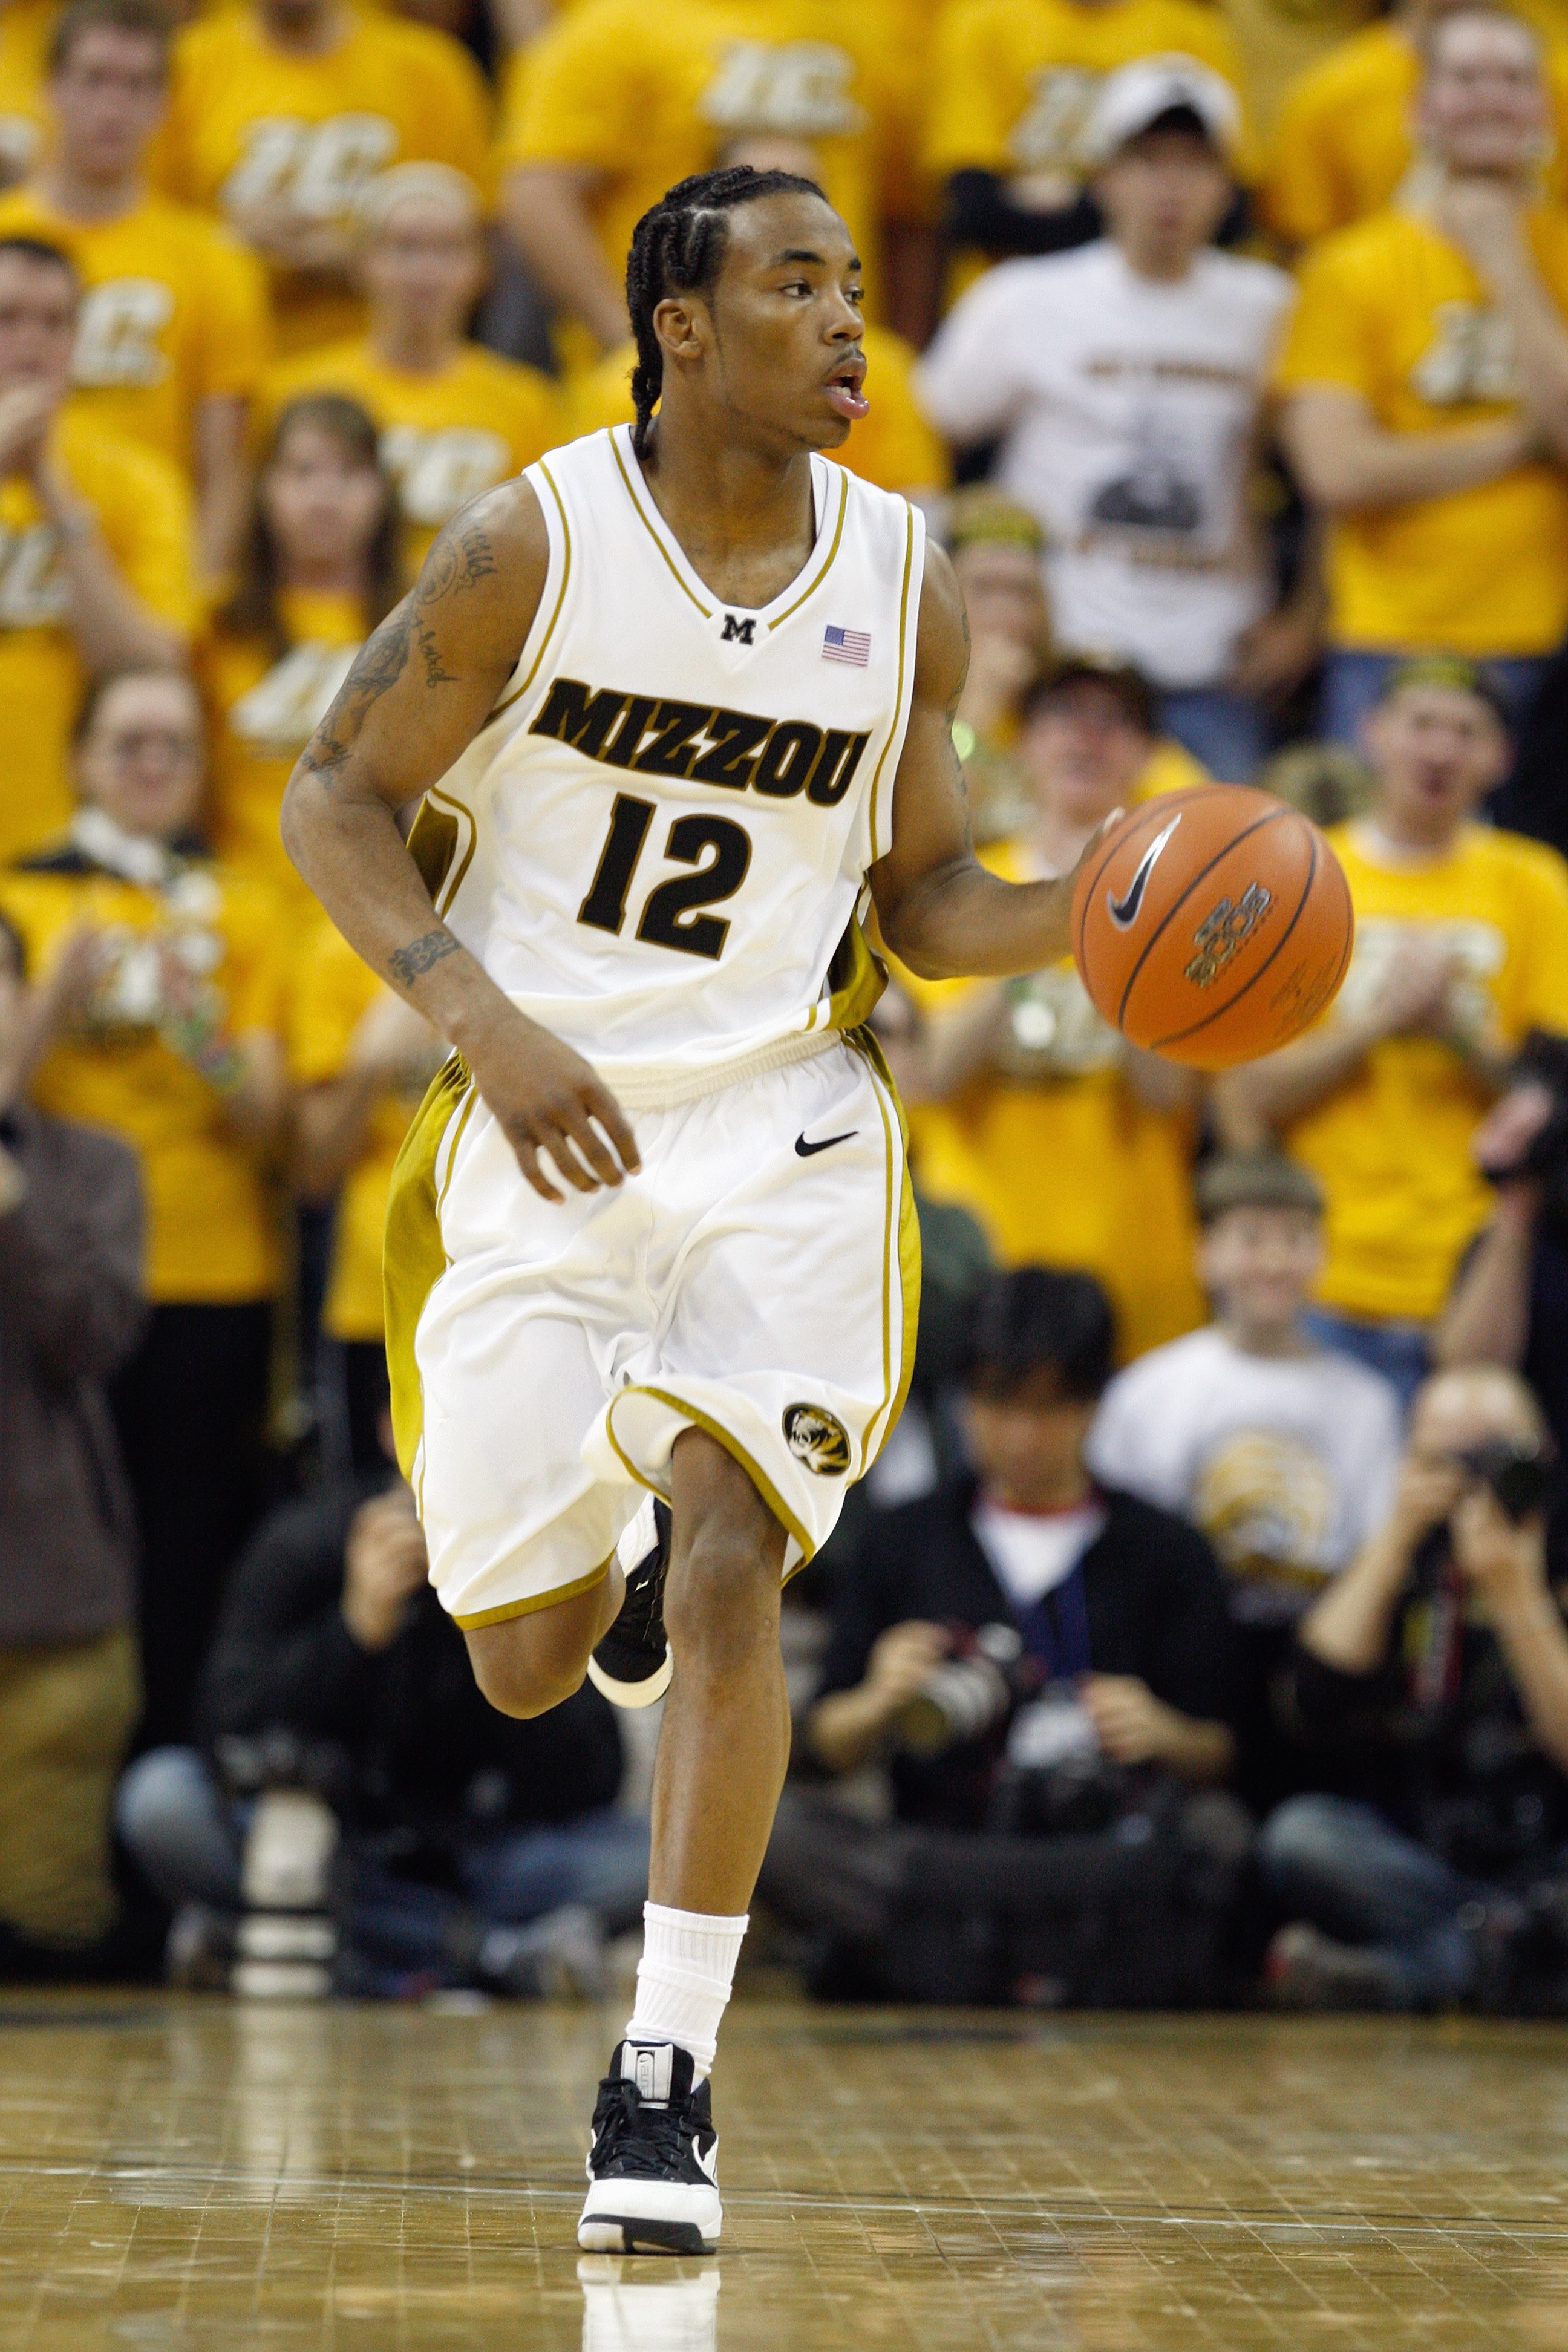 COLUMBIA, MISSOURI - FEBRUARY 9:  Marcus Denmon #12 of the Missouri Tigers dribbles the ball downcourt against the Kansas Jayhawks during the game on February 9, 2009 at Mizzou Arena in Columbia, Missouri. (Photo by: Jamie Squire/Getty Images)